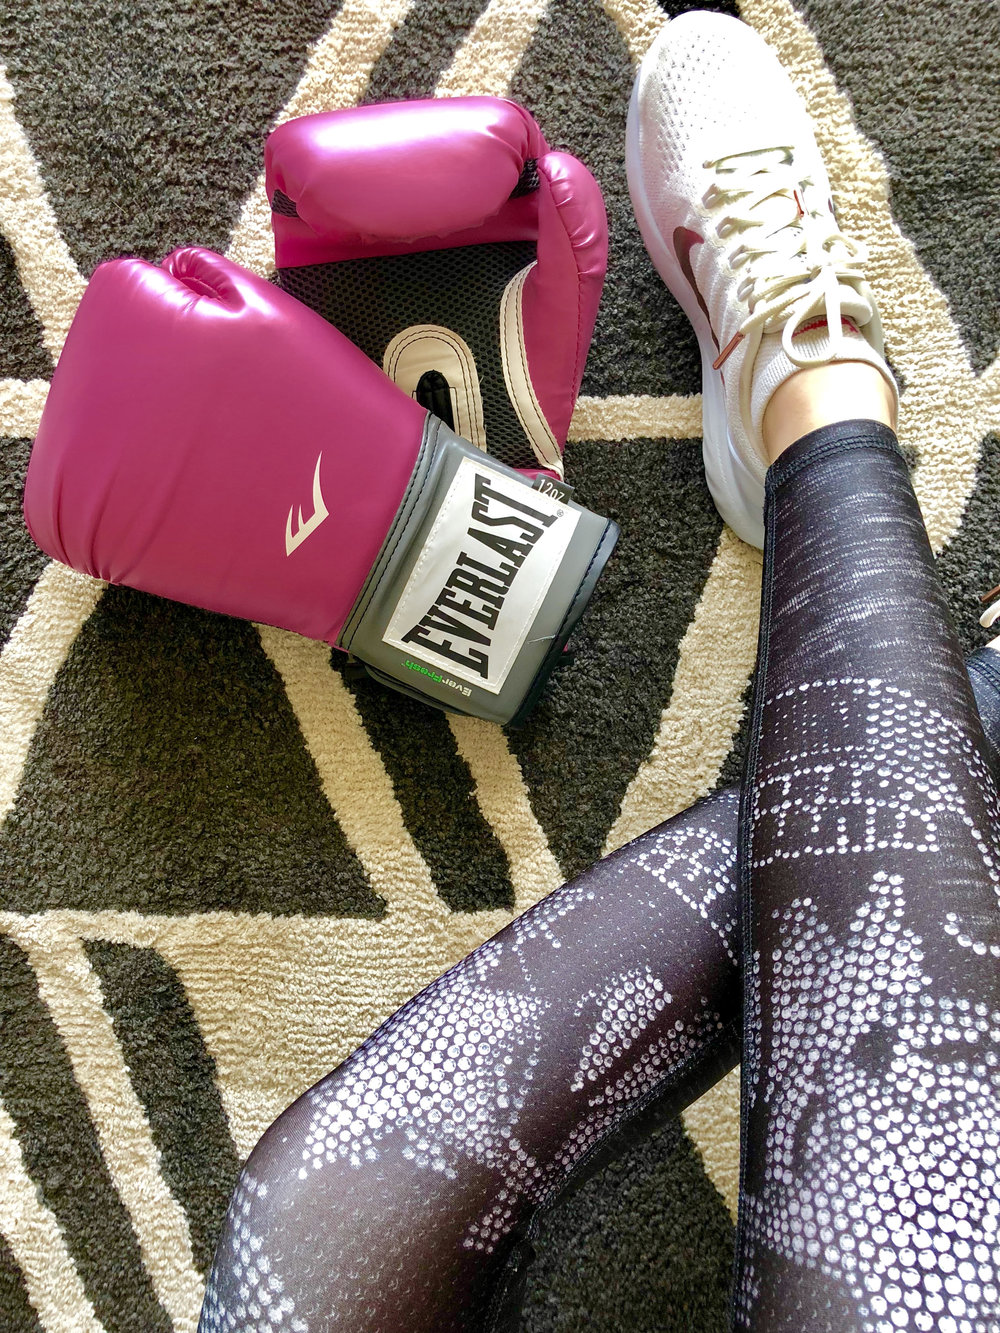 Everlast - Before my diagnosis, I was a huge boxing fan (and I can't wait to get back in the ring)! I love my Everlast Pro Style Training Gloves. I, of course, have them in pink (pictured). I also occasionally wear the pink Hand Wraps but, fair warning, they're a little thin for my taste.The best part? Everlast is a proud supporter of BCRF, donating $75,000 to the organization, regardless of sales. You can shop pink all year long and learn more about Everlast's support here.P.S. How cute are my leggings? They're Terez, one of my favorites!